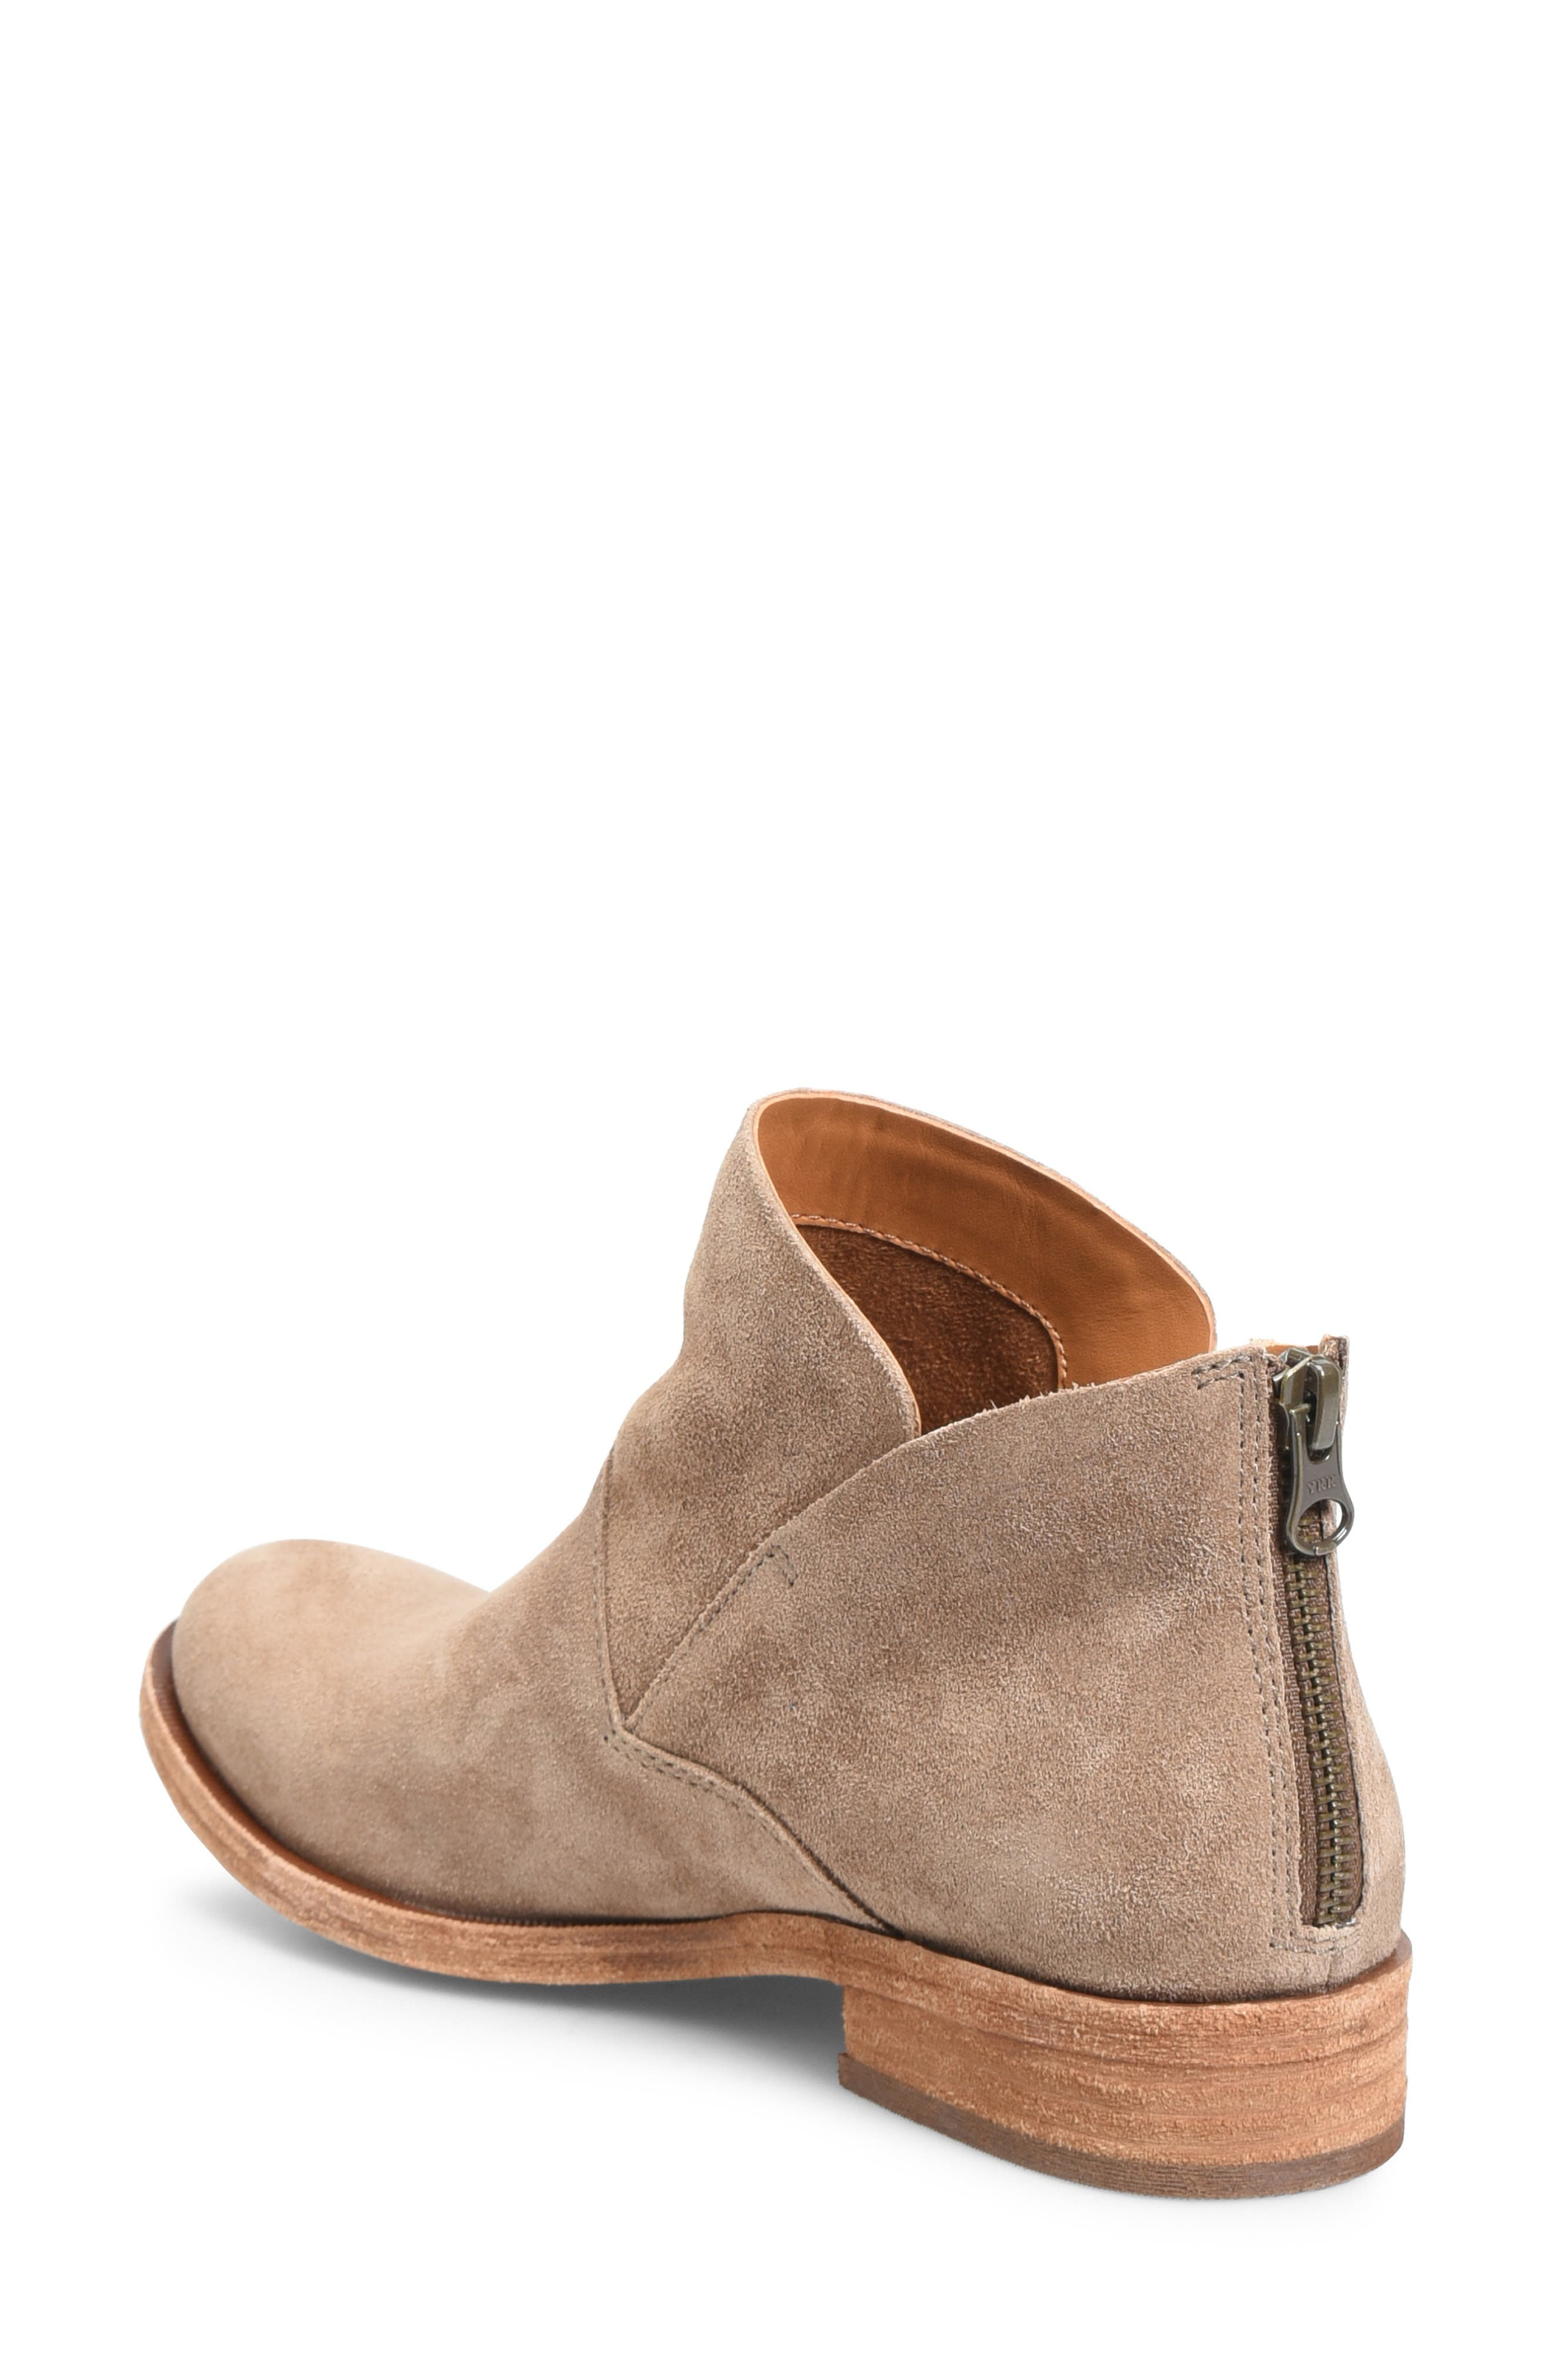 KORK-EASE<SUP>®</SUP>, Ryder Ankle Boot, Alternate thumbnail 2, color, TAUPE GREY SUEDE